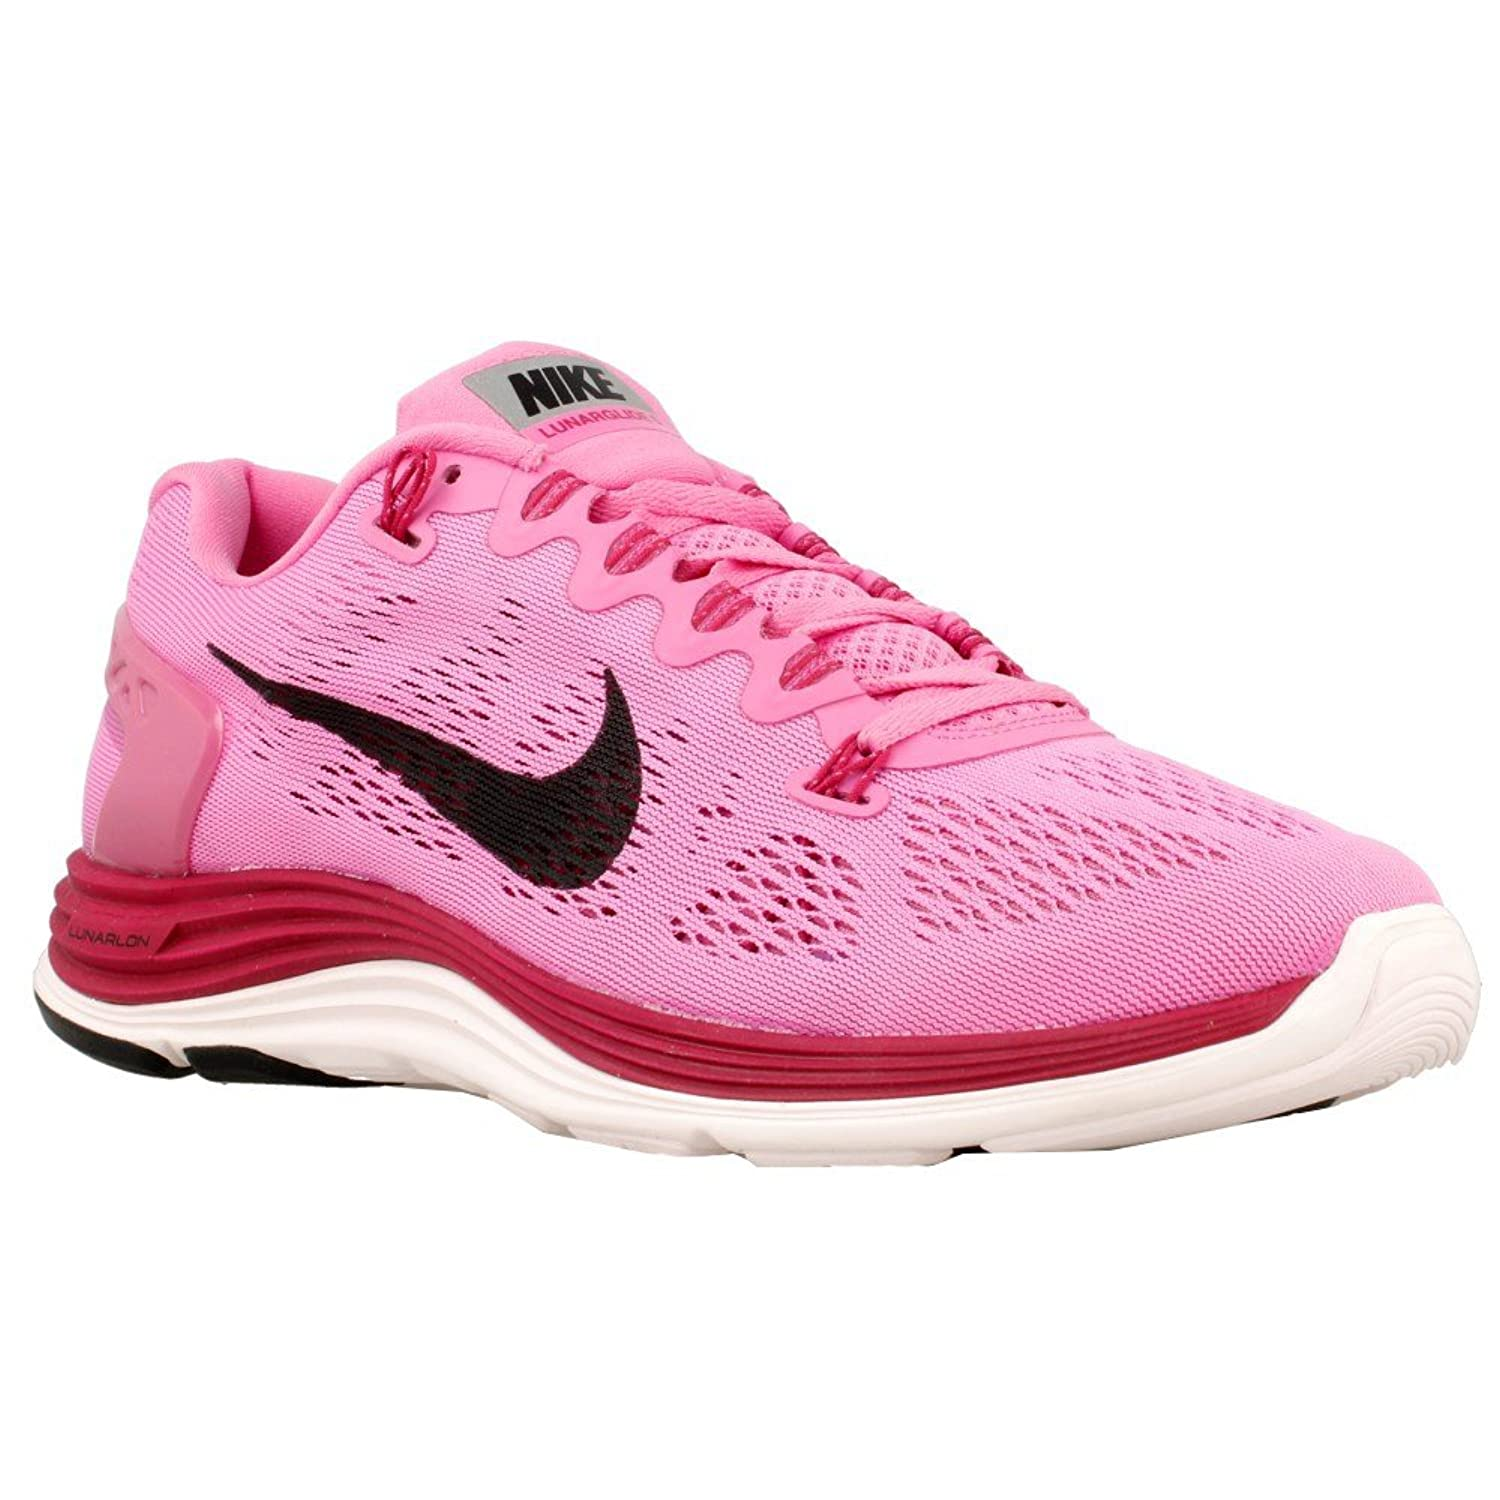 674bbf0abdba ... and white 8a831 f7ea4 new zealand amazon nike lunarglide 5 ladies  running shoes road running 8573e eca34 ...